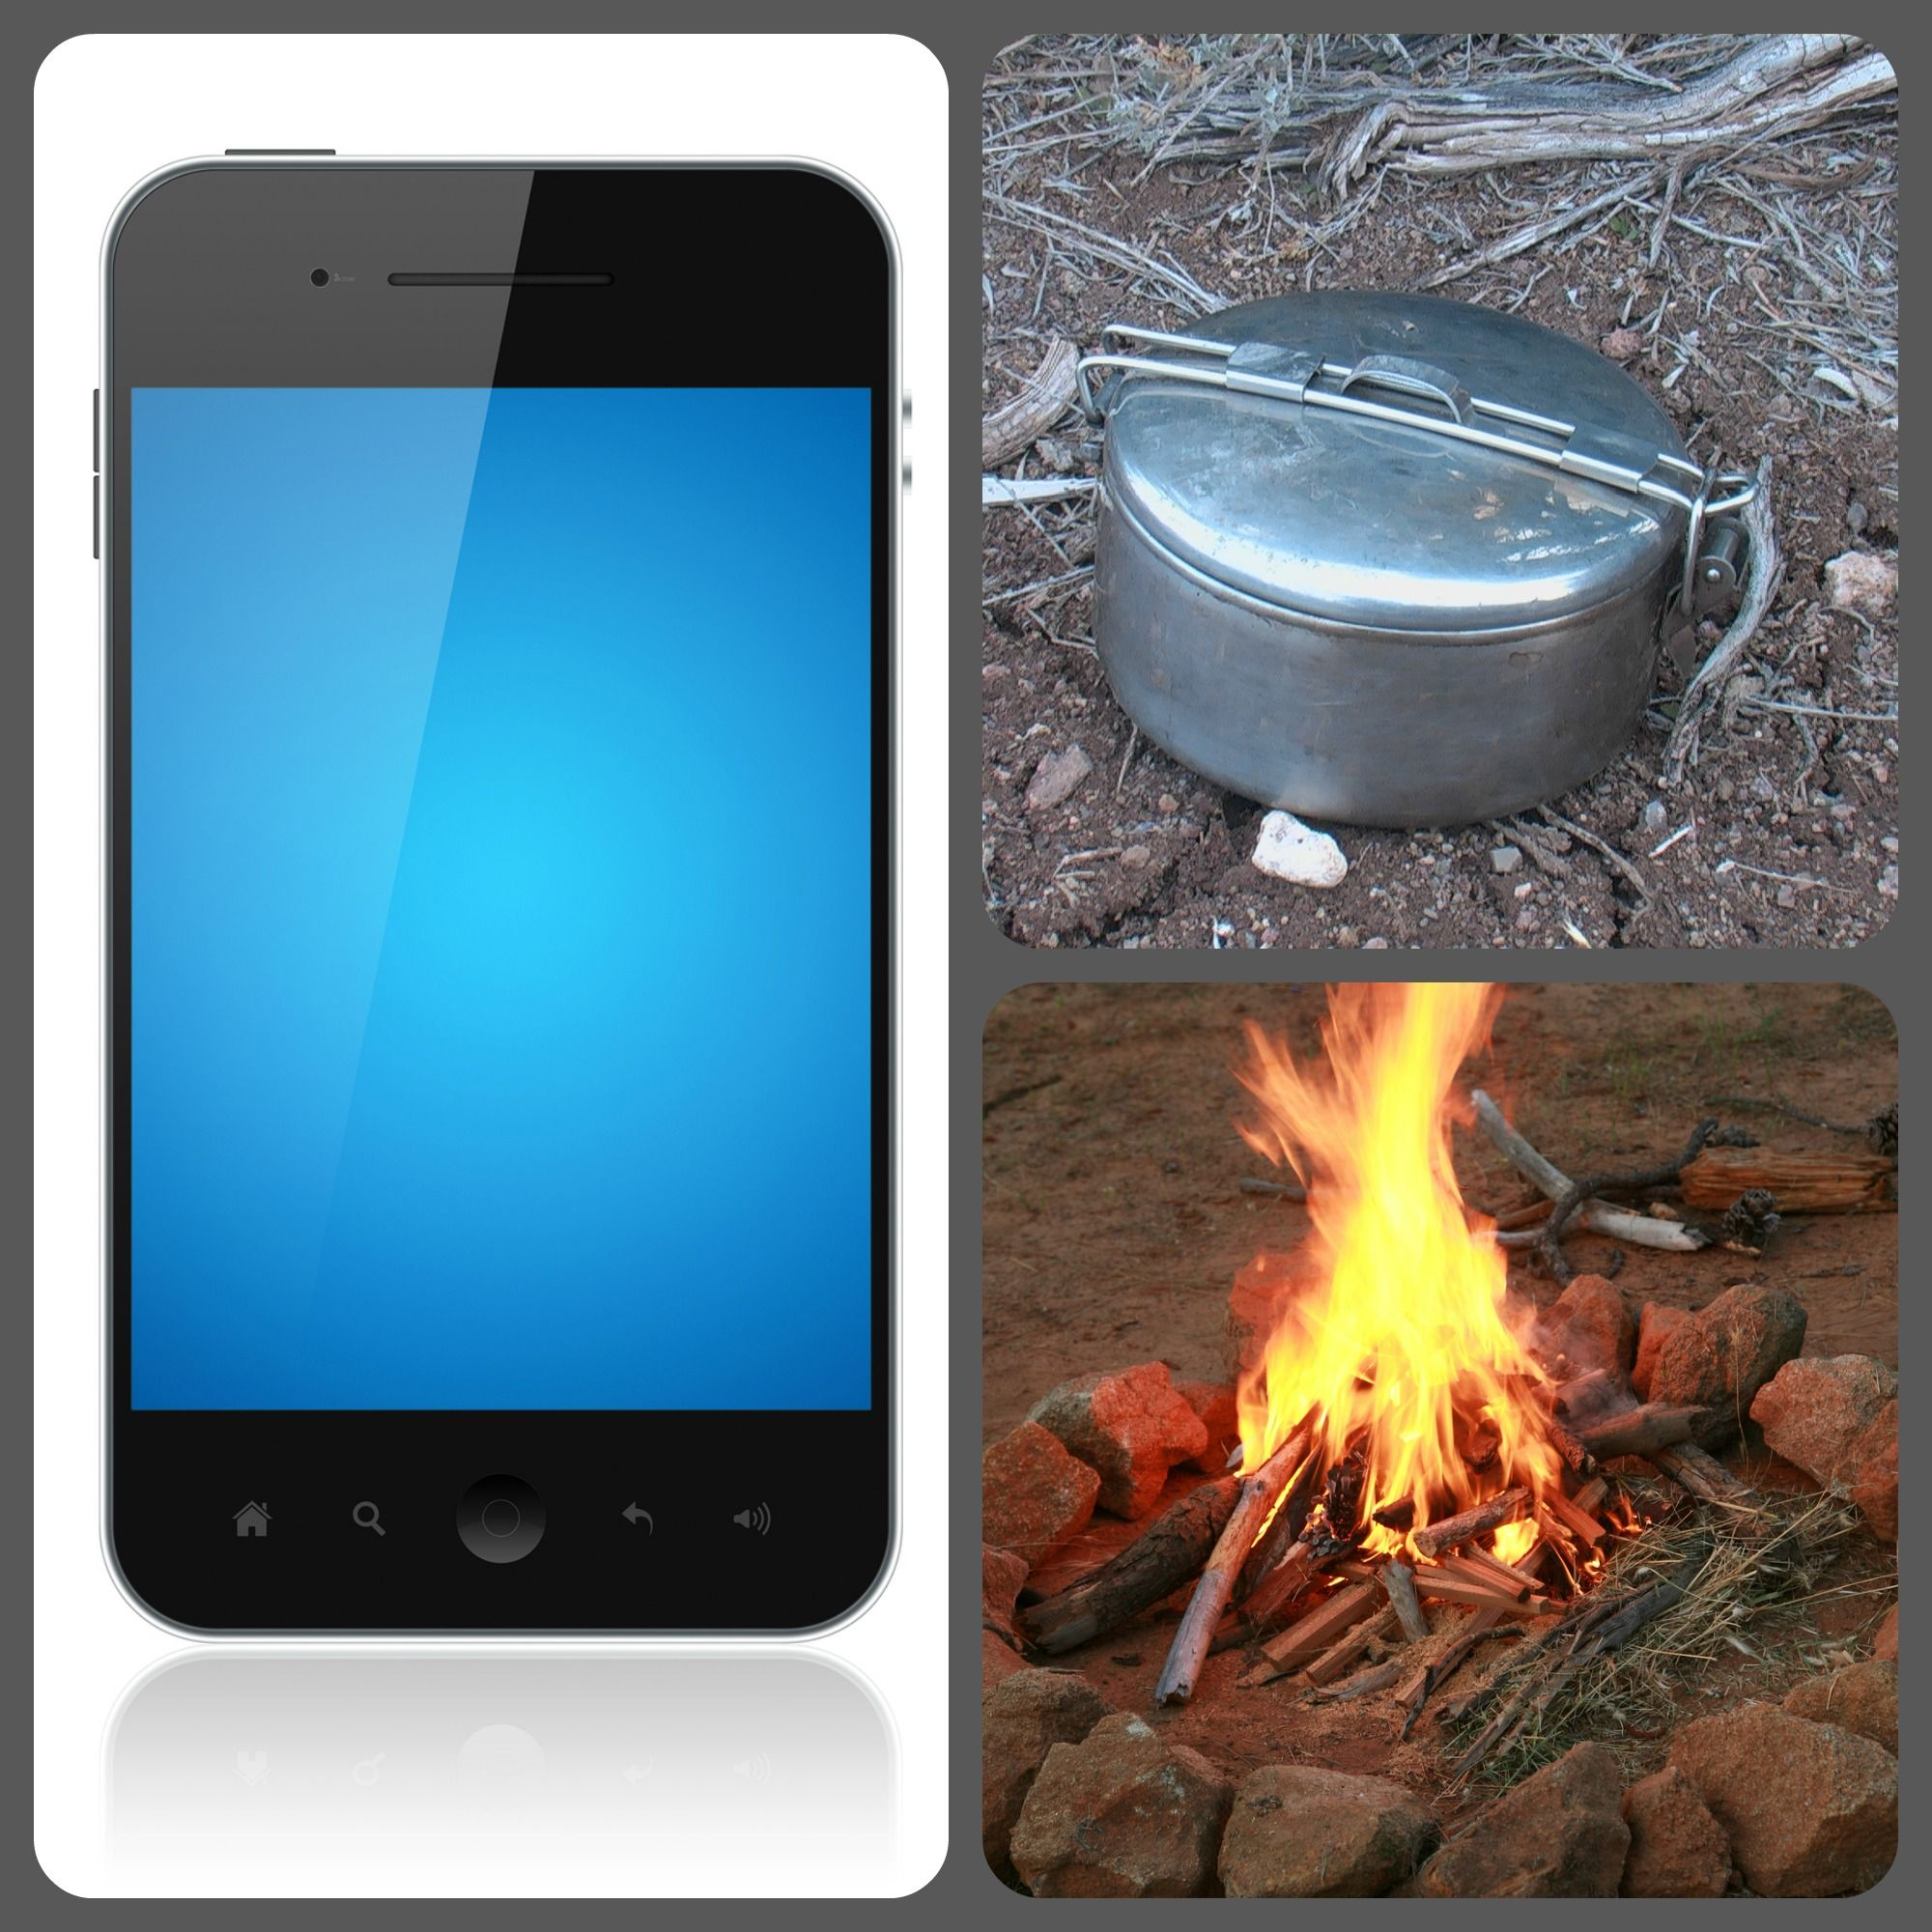 Trade your teens smart phone for a cooking pot for the weekend!